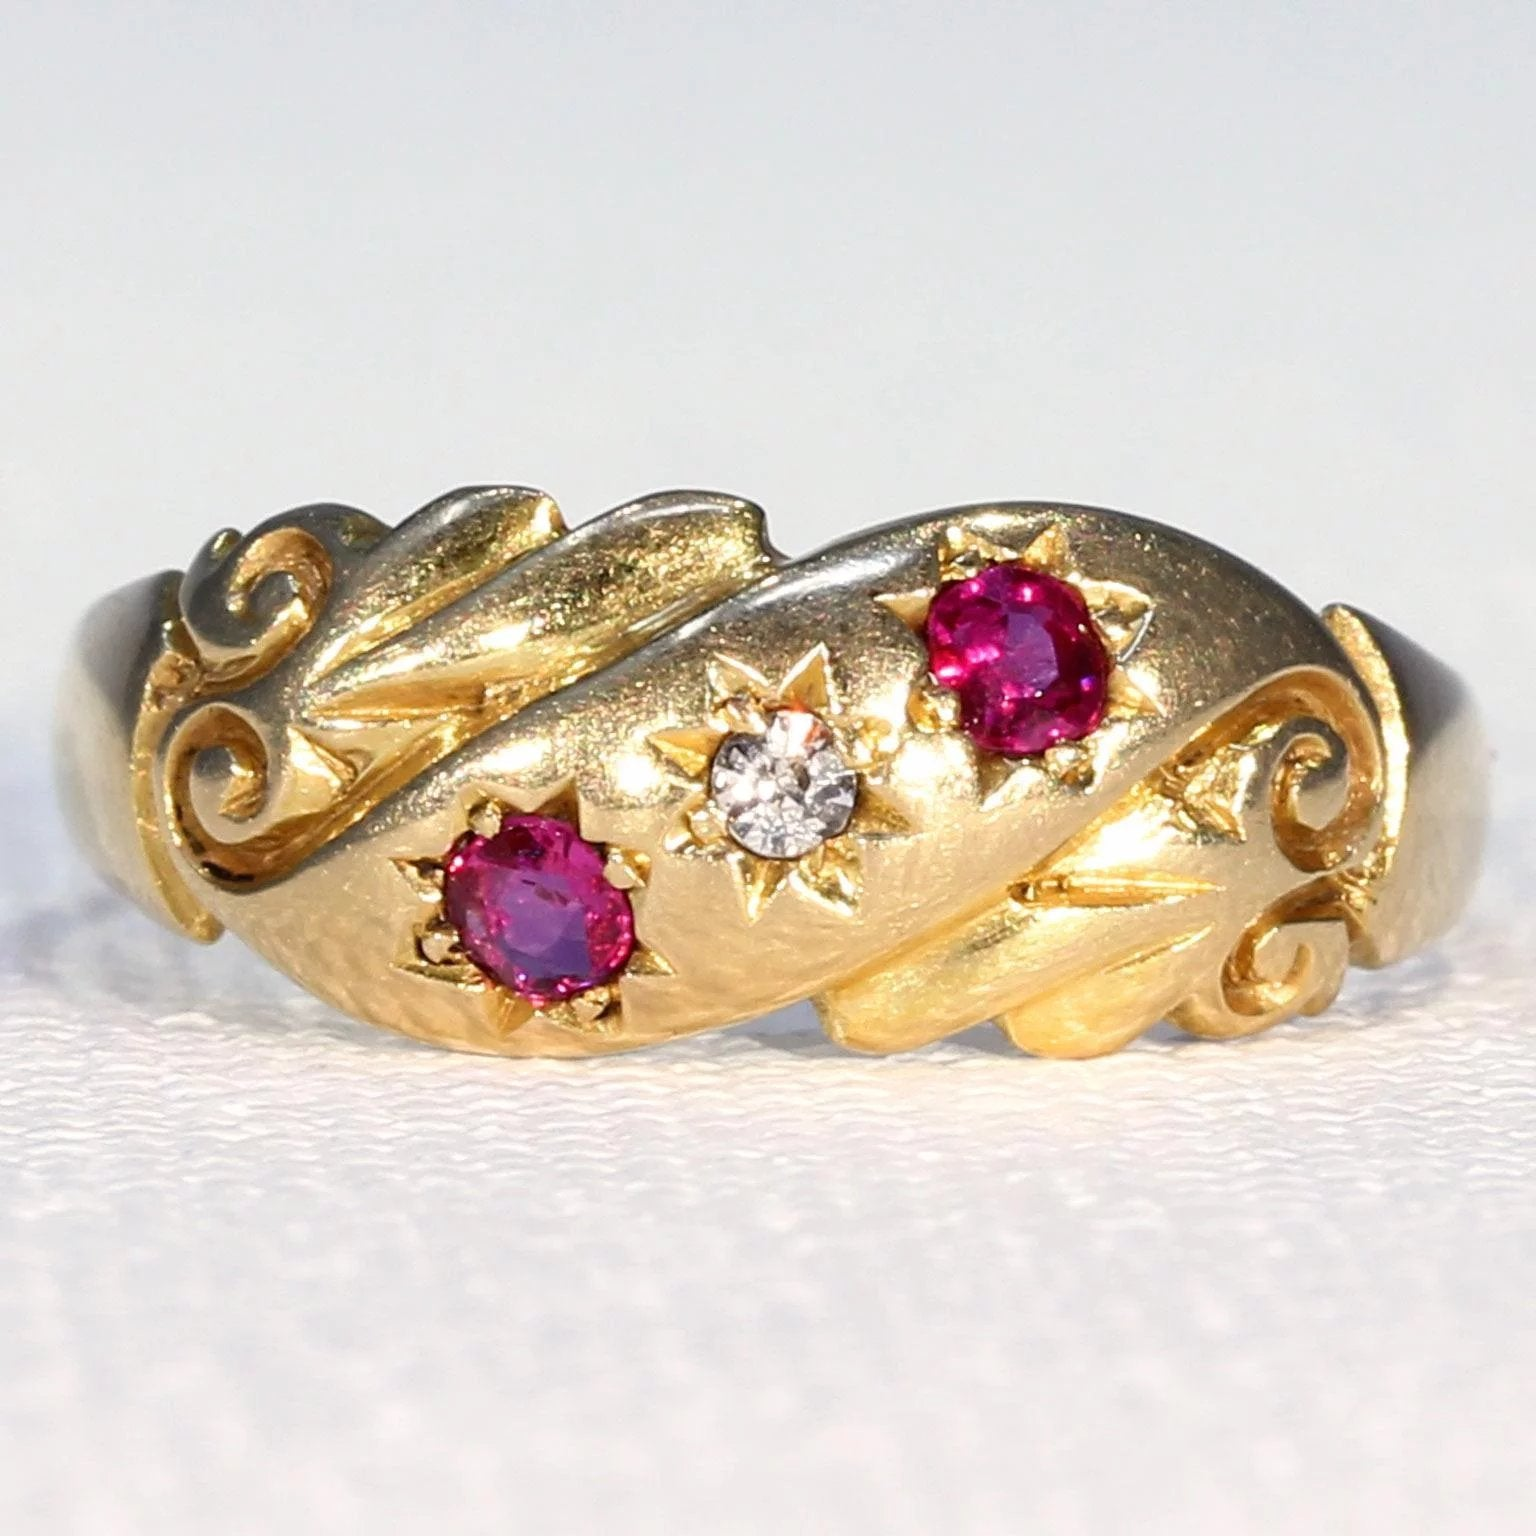 Antique Ruby Diamond Ring Hallmarked 1900